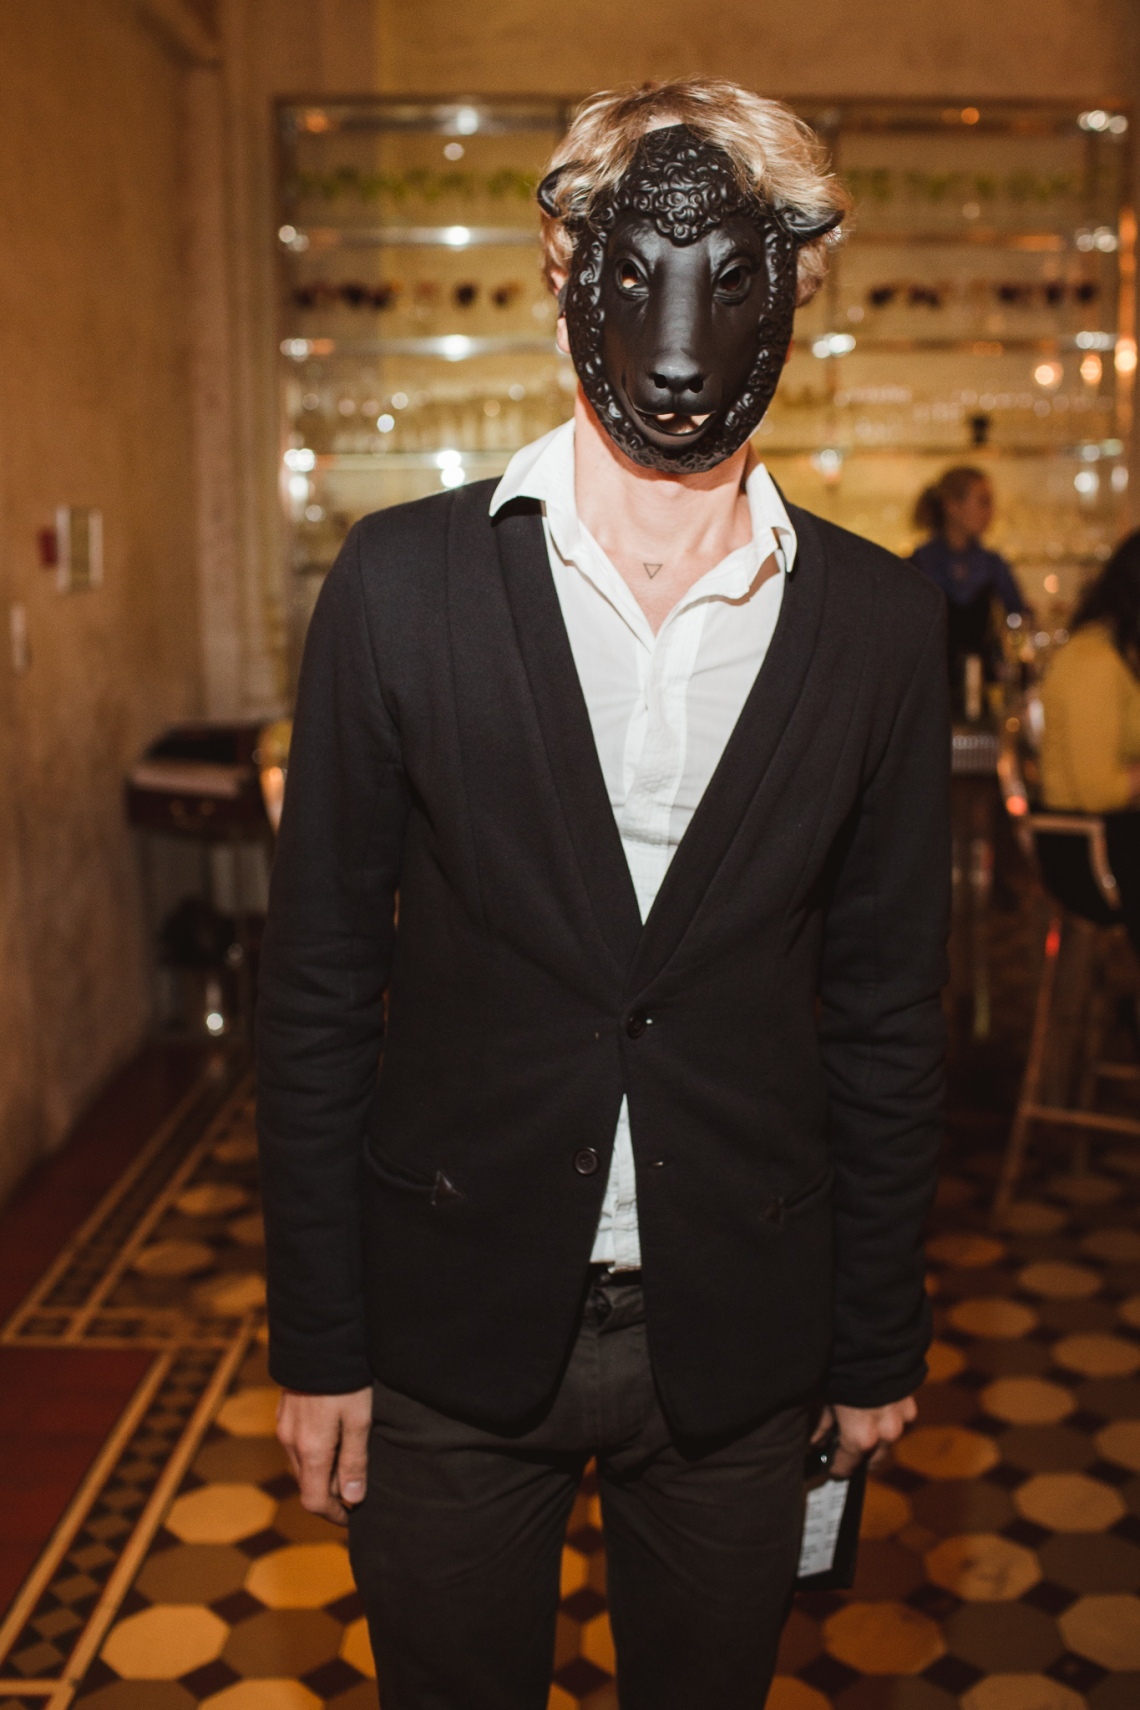 Performance artist Fyodor Pavlov Andreevich. Photo courtesy of Metropol Hotel